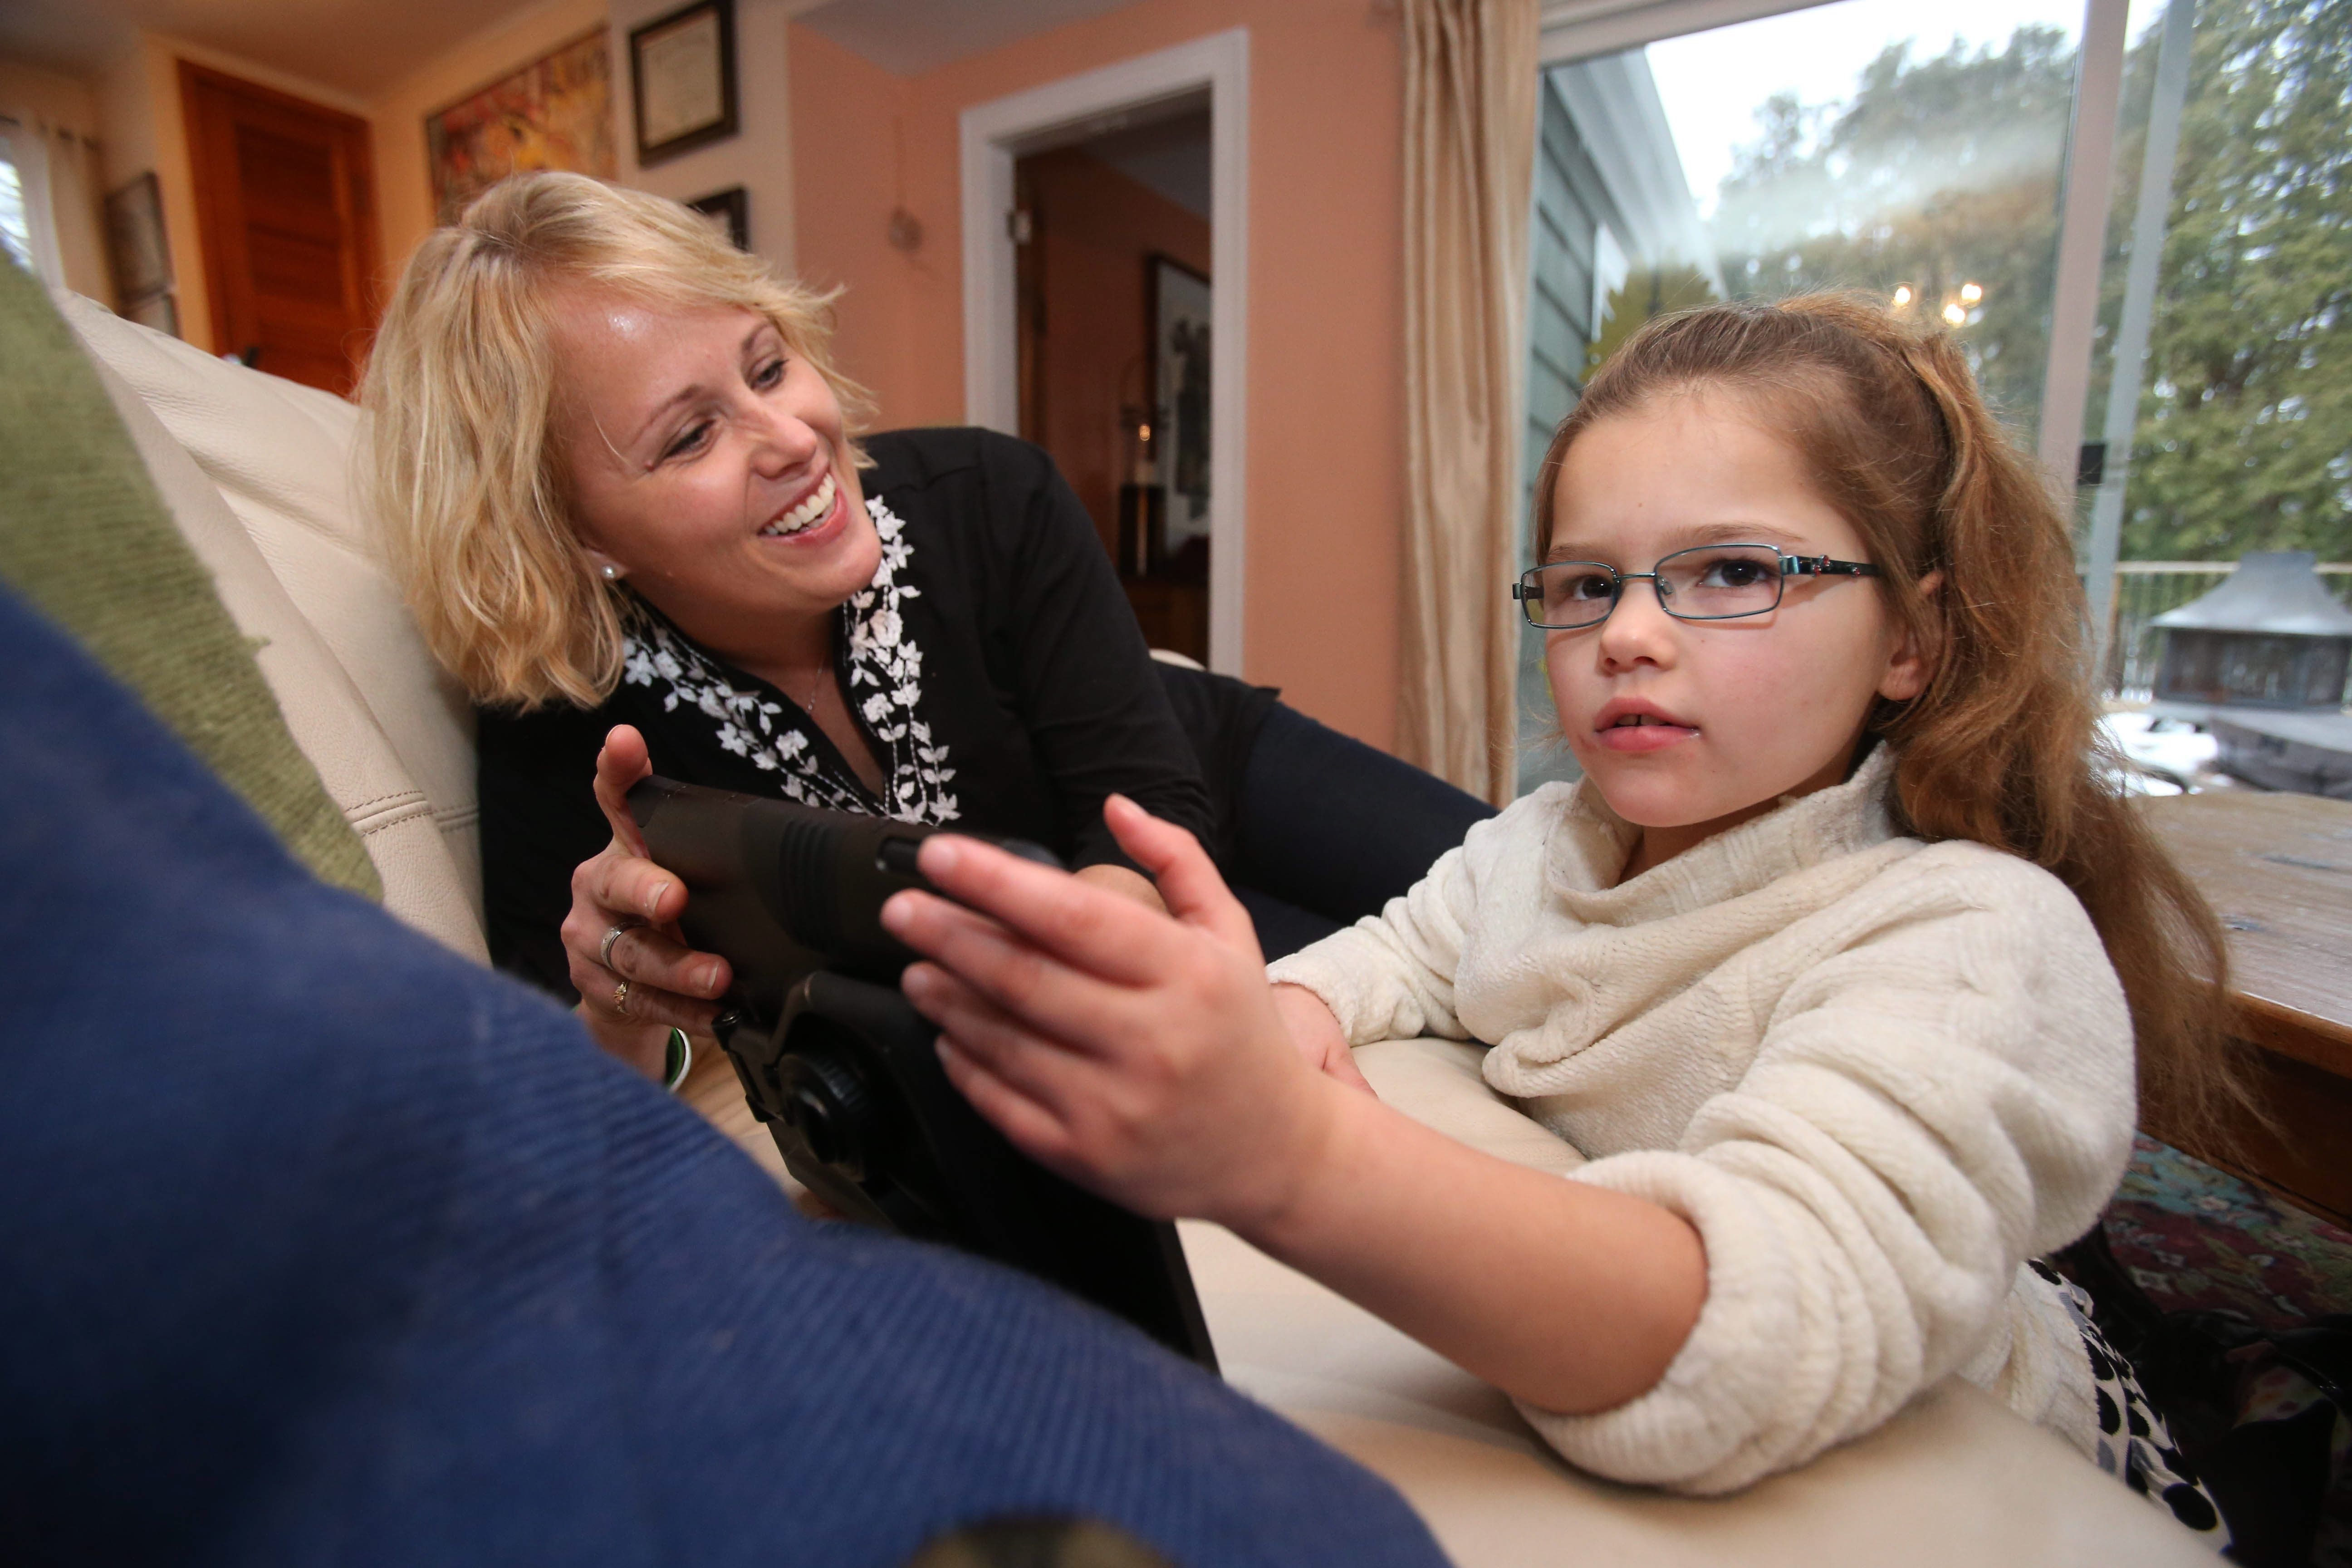 Wendy Conte with Anna, then 8, in Orchard Park. Anna became the face of the issue.